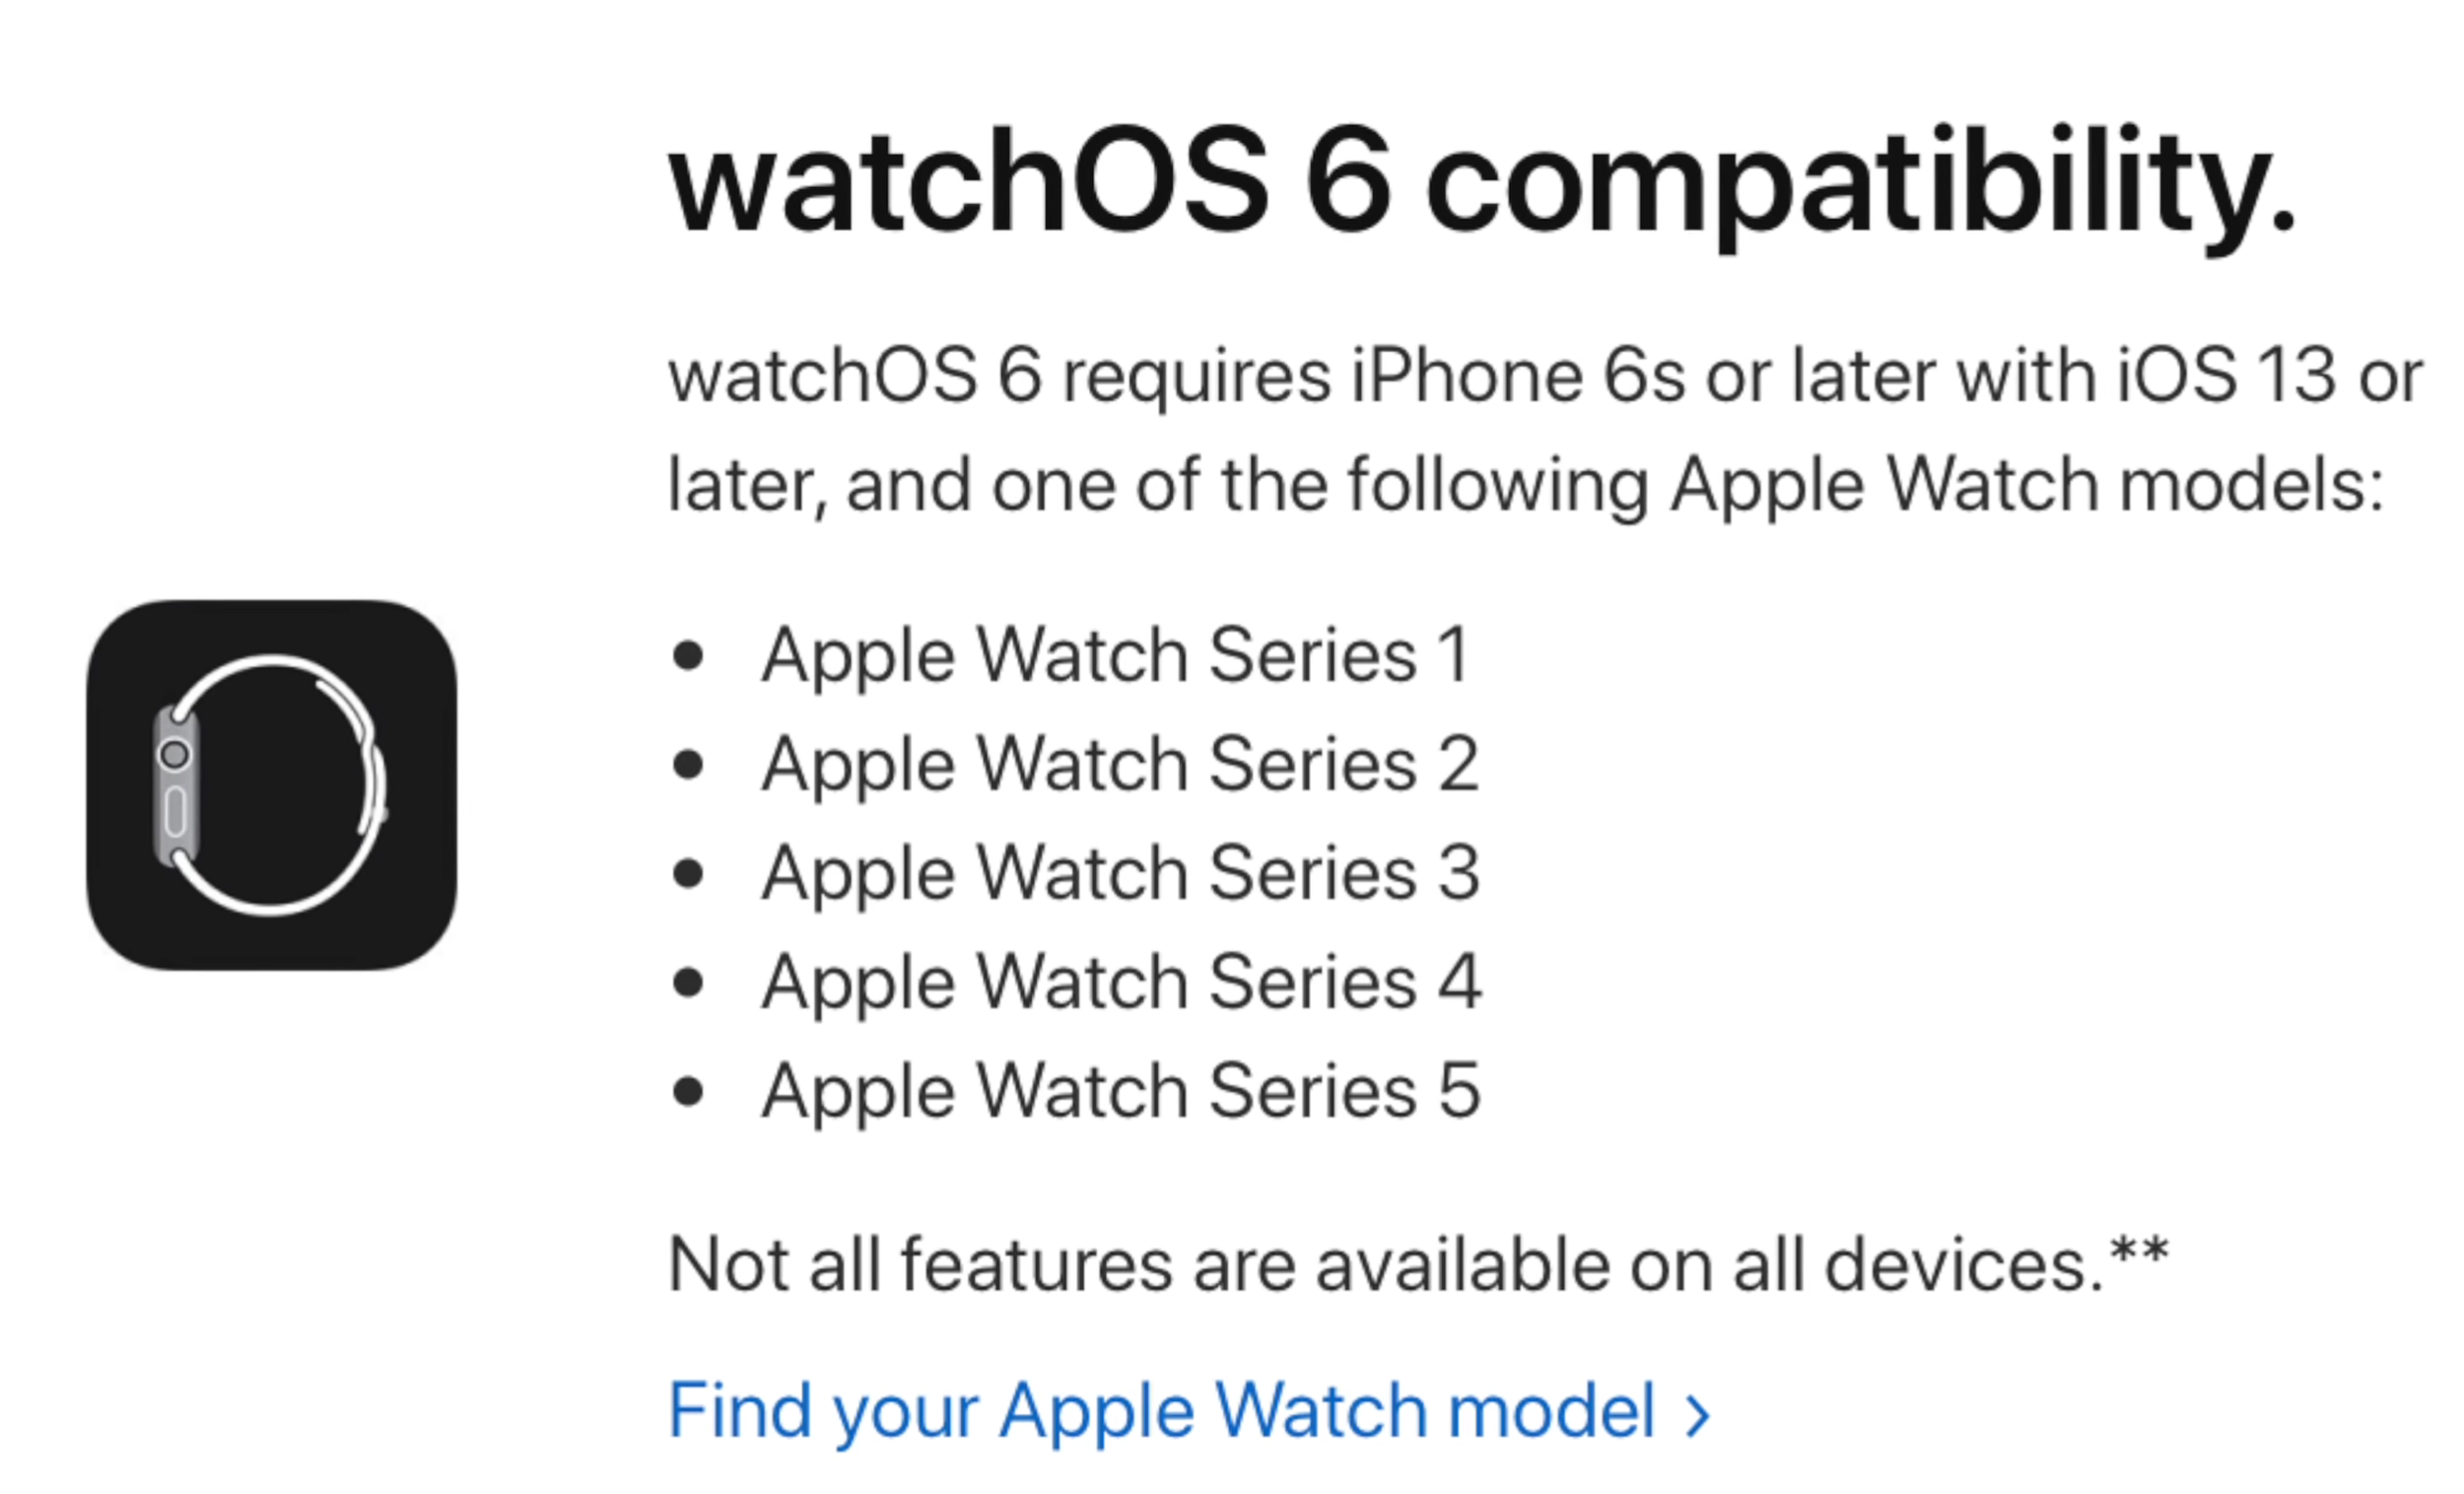 Regardless of the model of Apple Watch you have, it will be compatible with watchOS 6 (Source: Apple)